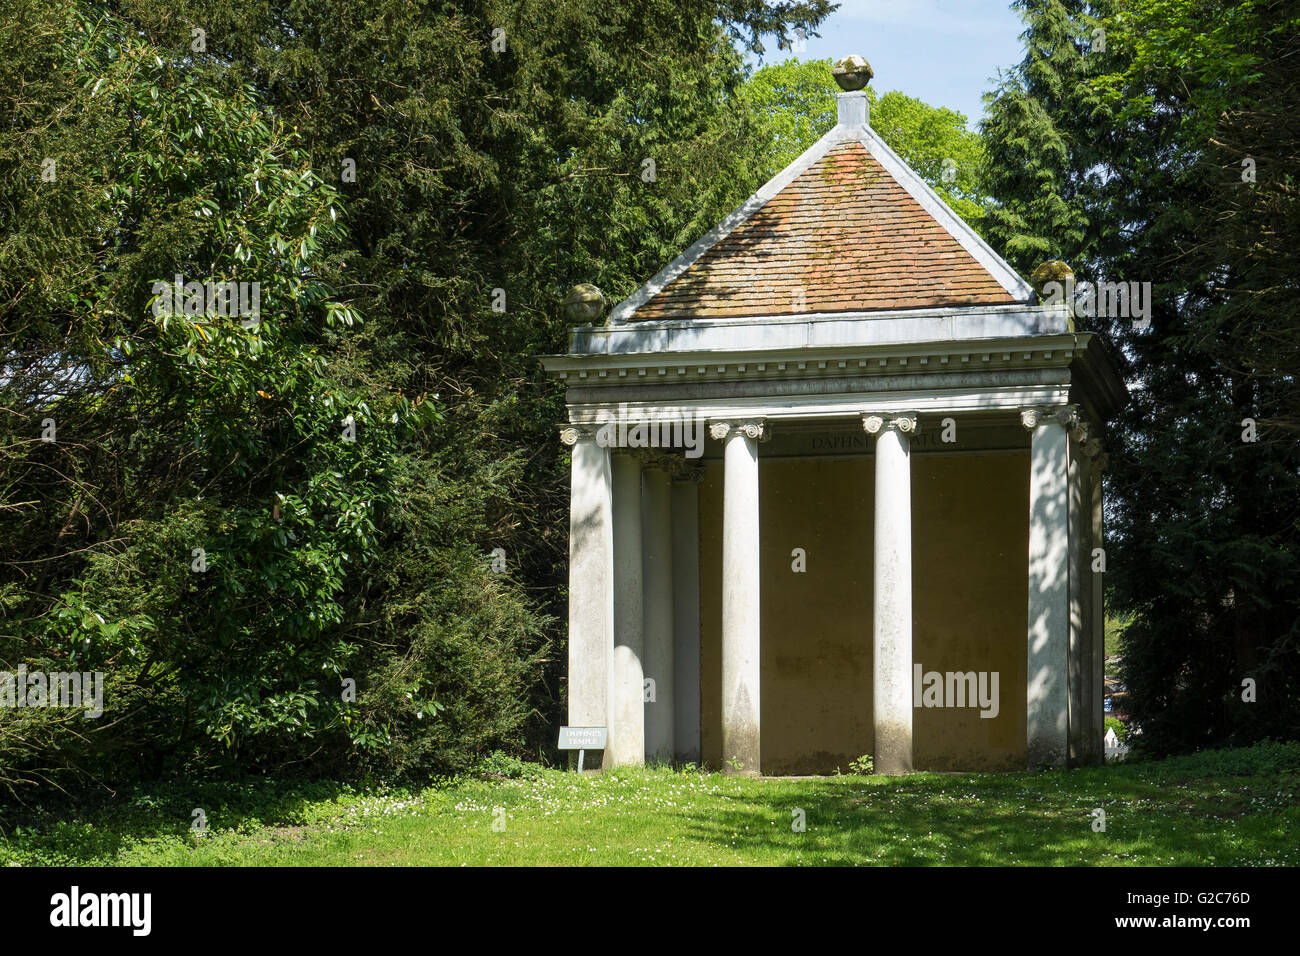 England, Buckinghamshire, West Wycombe park, Daphne's temple - Stock Image